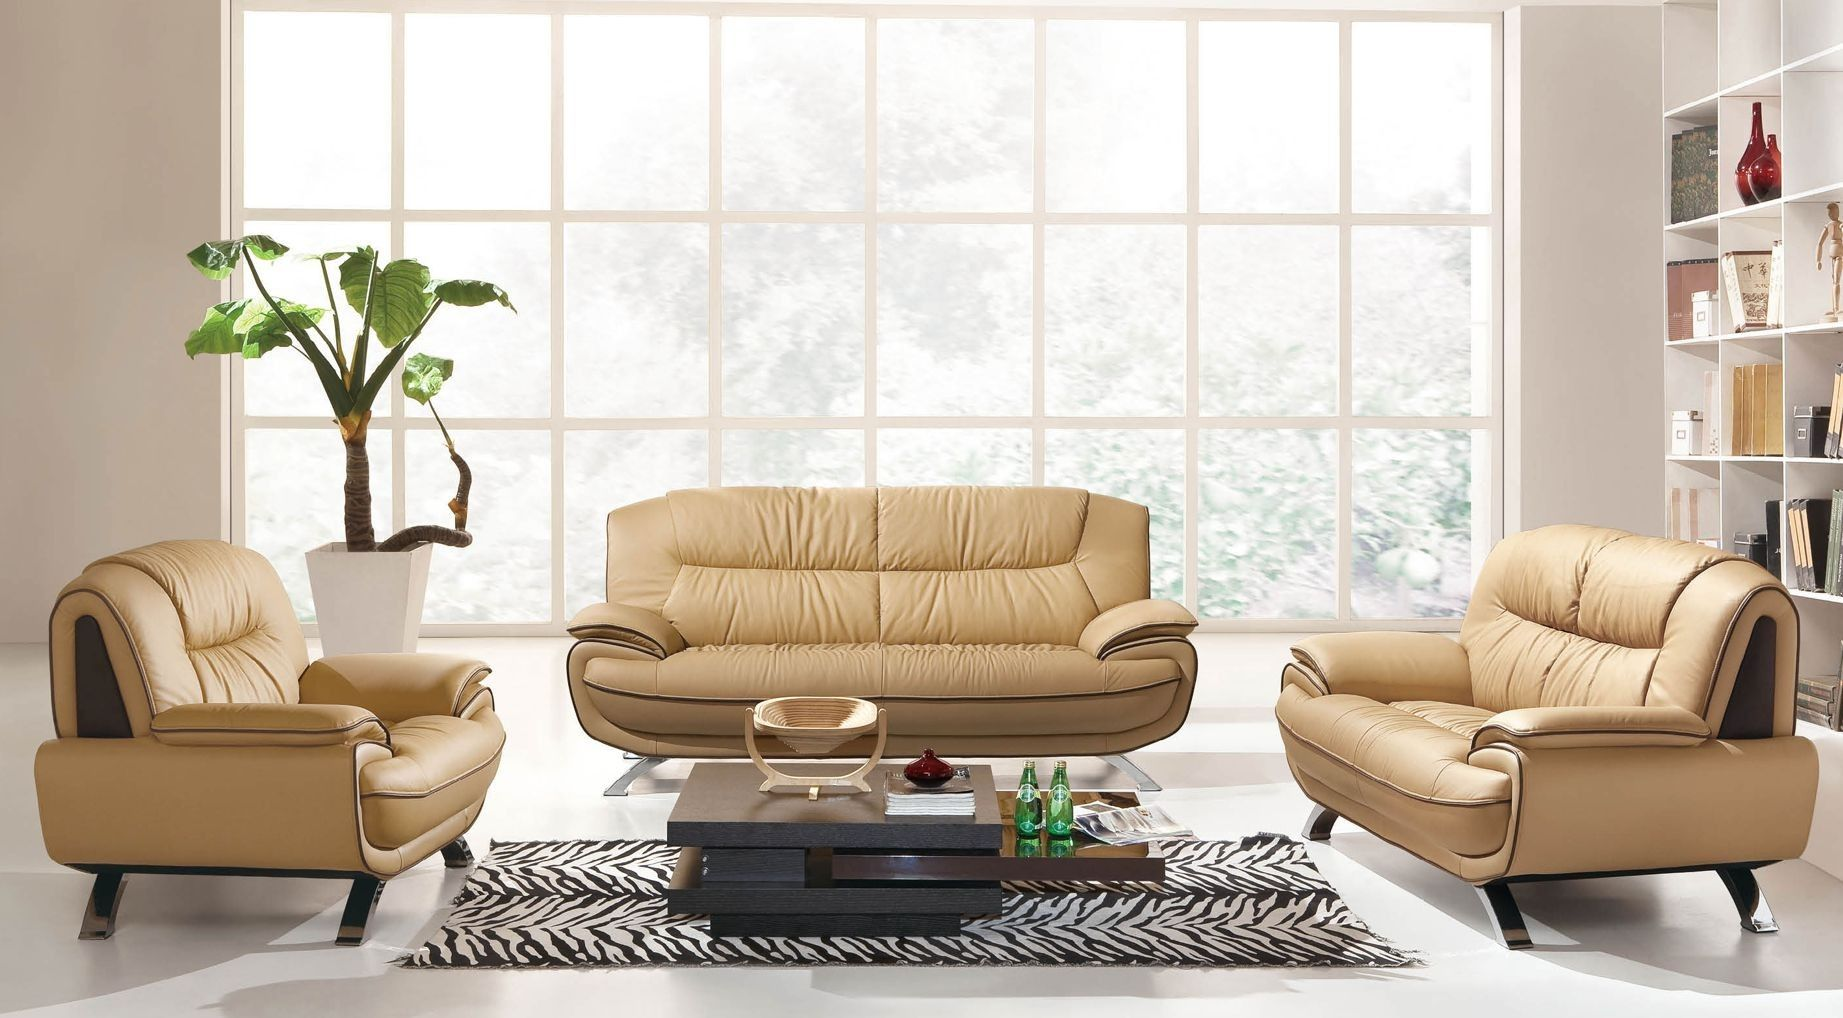 grey side rsp reclining euroclassic room esf sectional index furniture grain leather living top sectionals